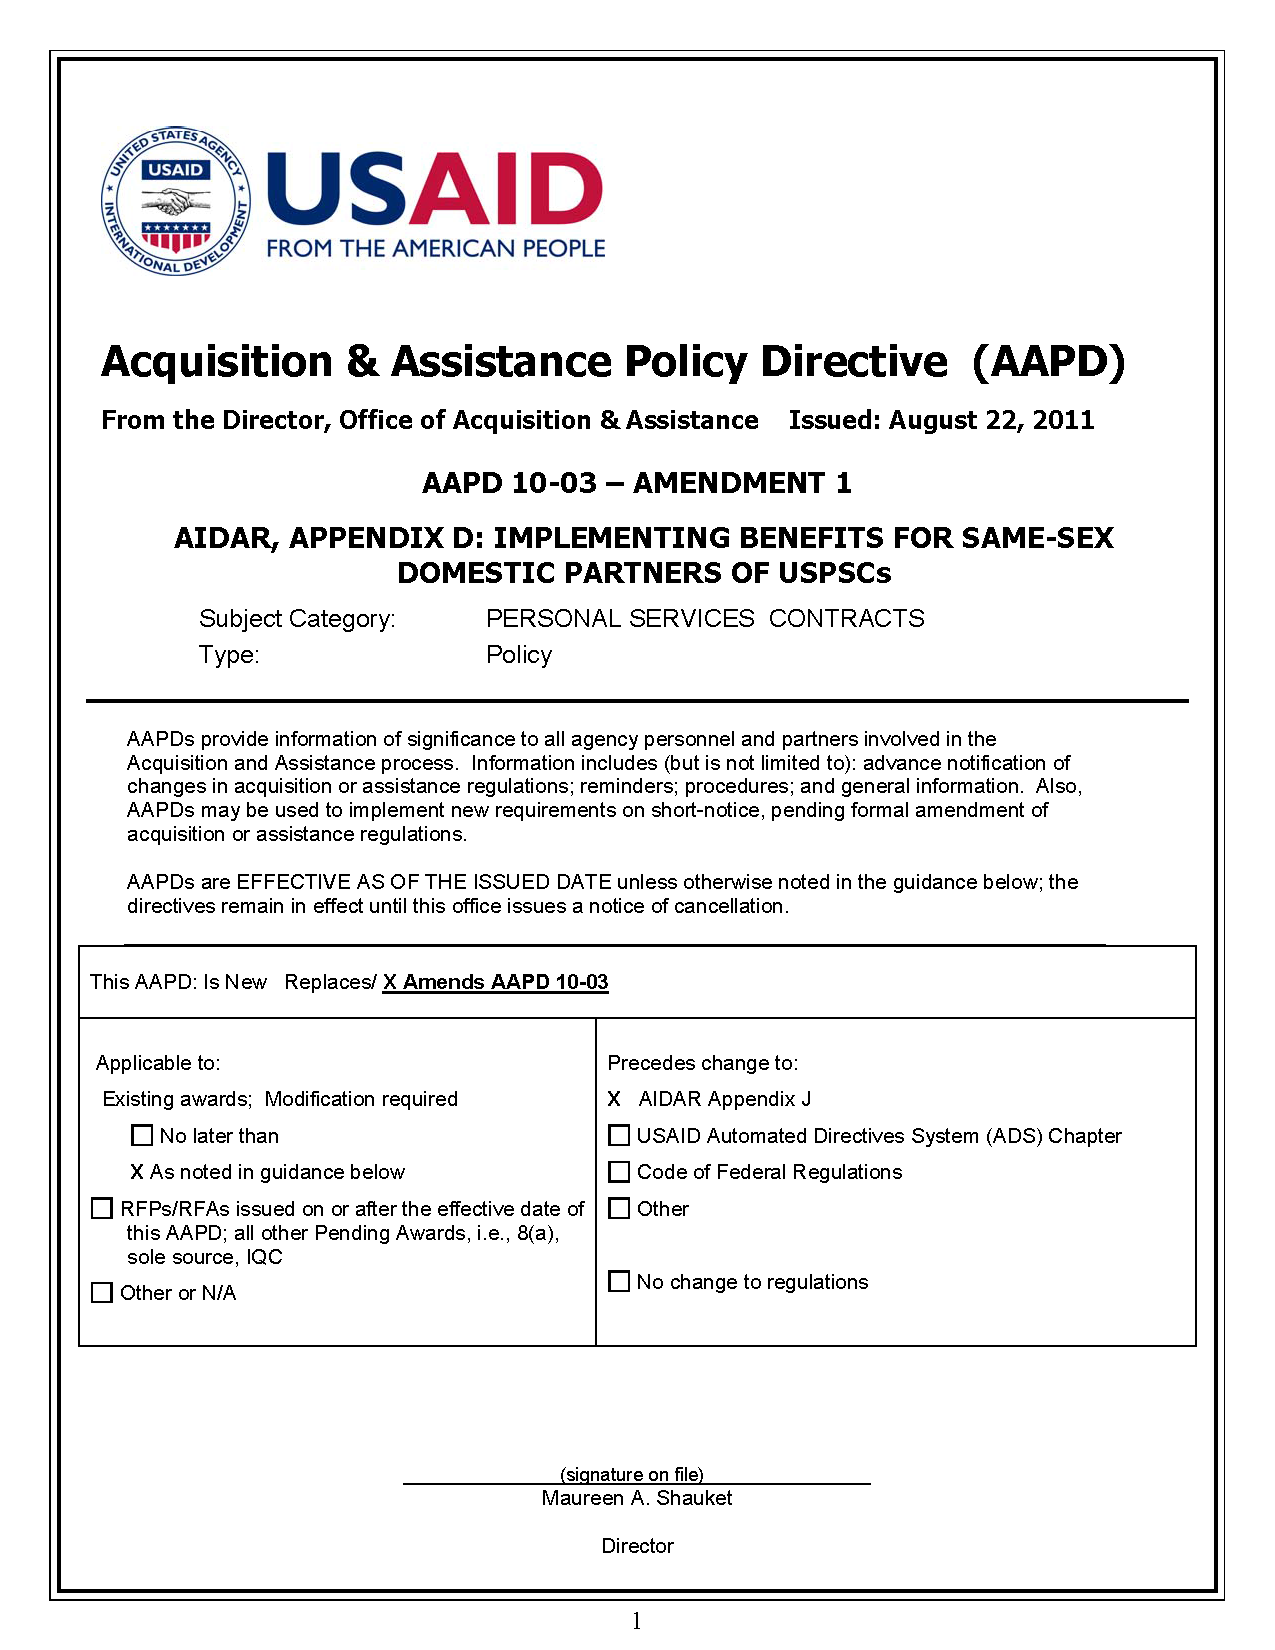 AAPD 10-03 Amendment 1